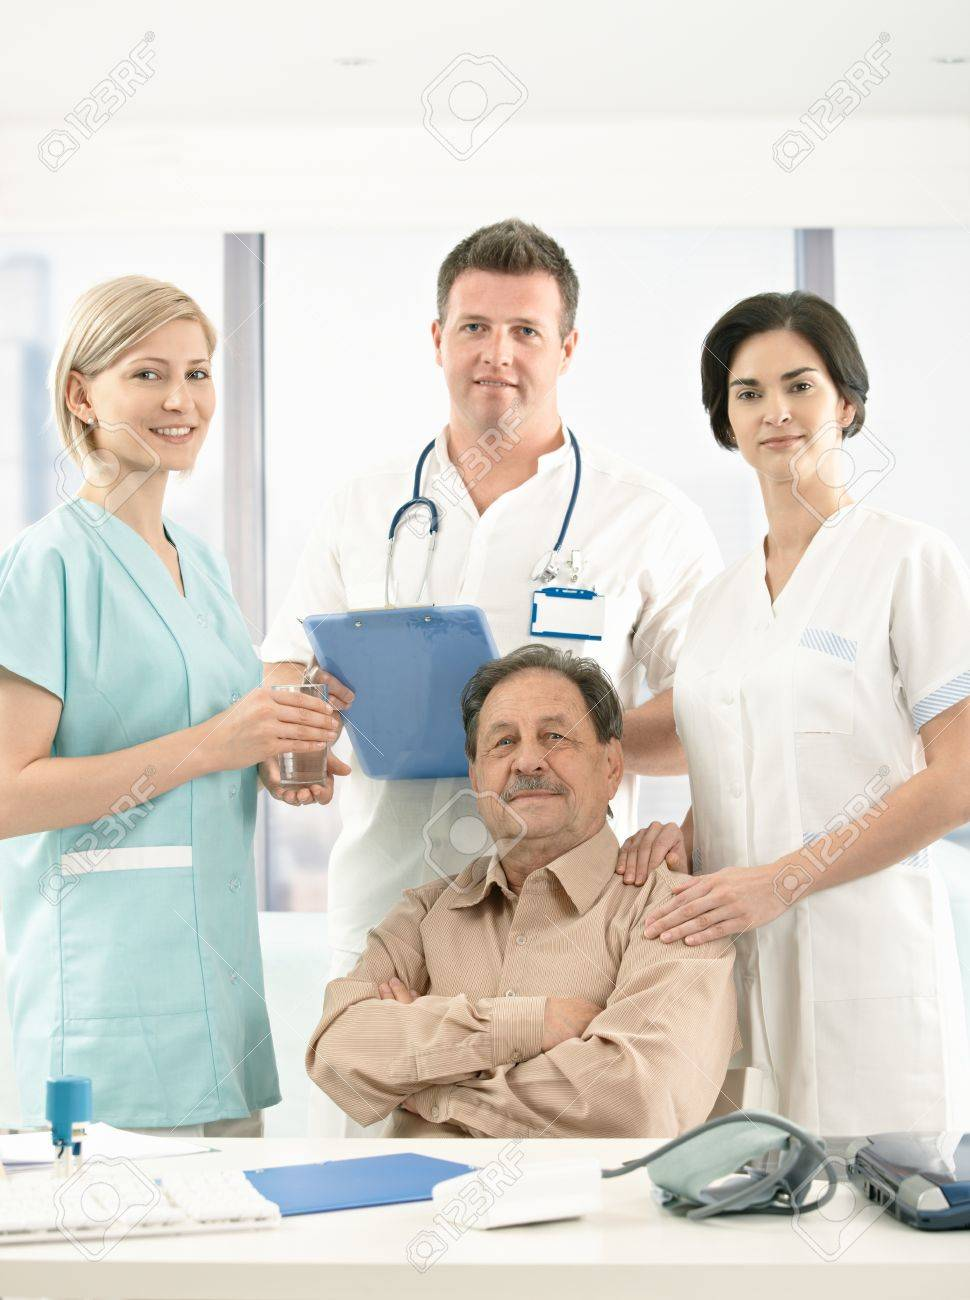 Portrait of senior patient sitting surrounded with medical crew, looking at camera, smiling. Stock Photo - 8782938